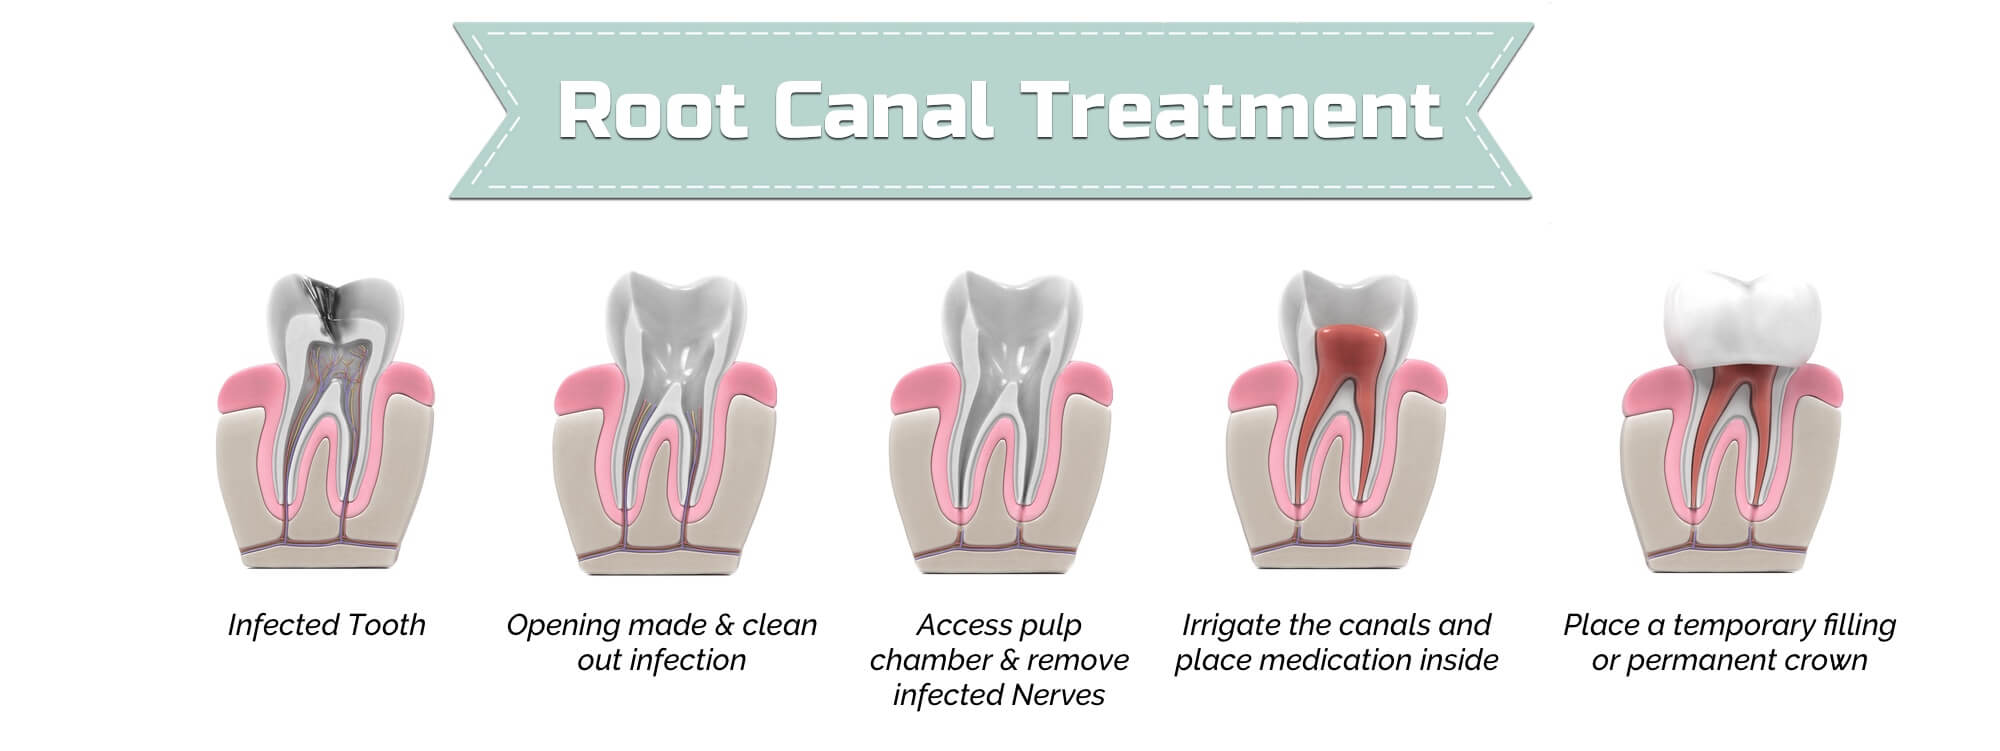 root canal therapy and treatment | michelle wang dds